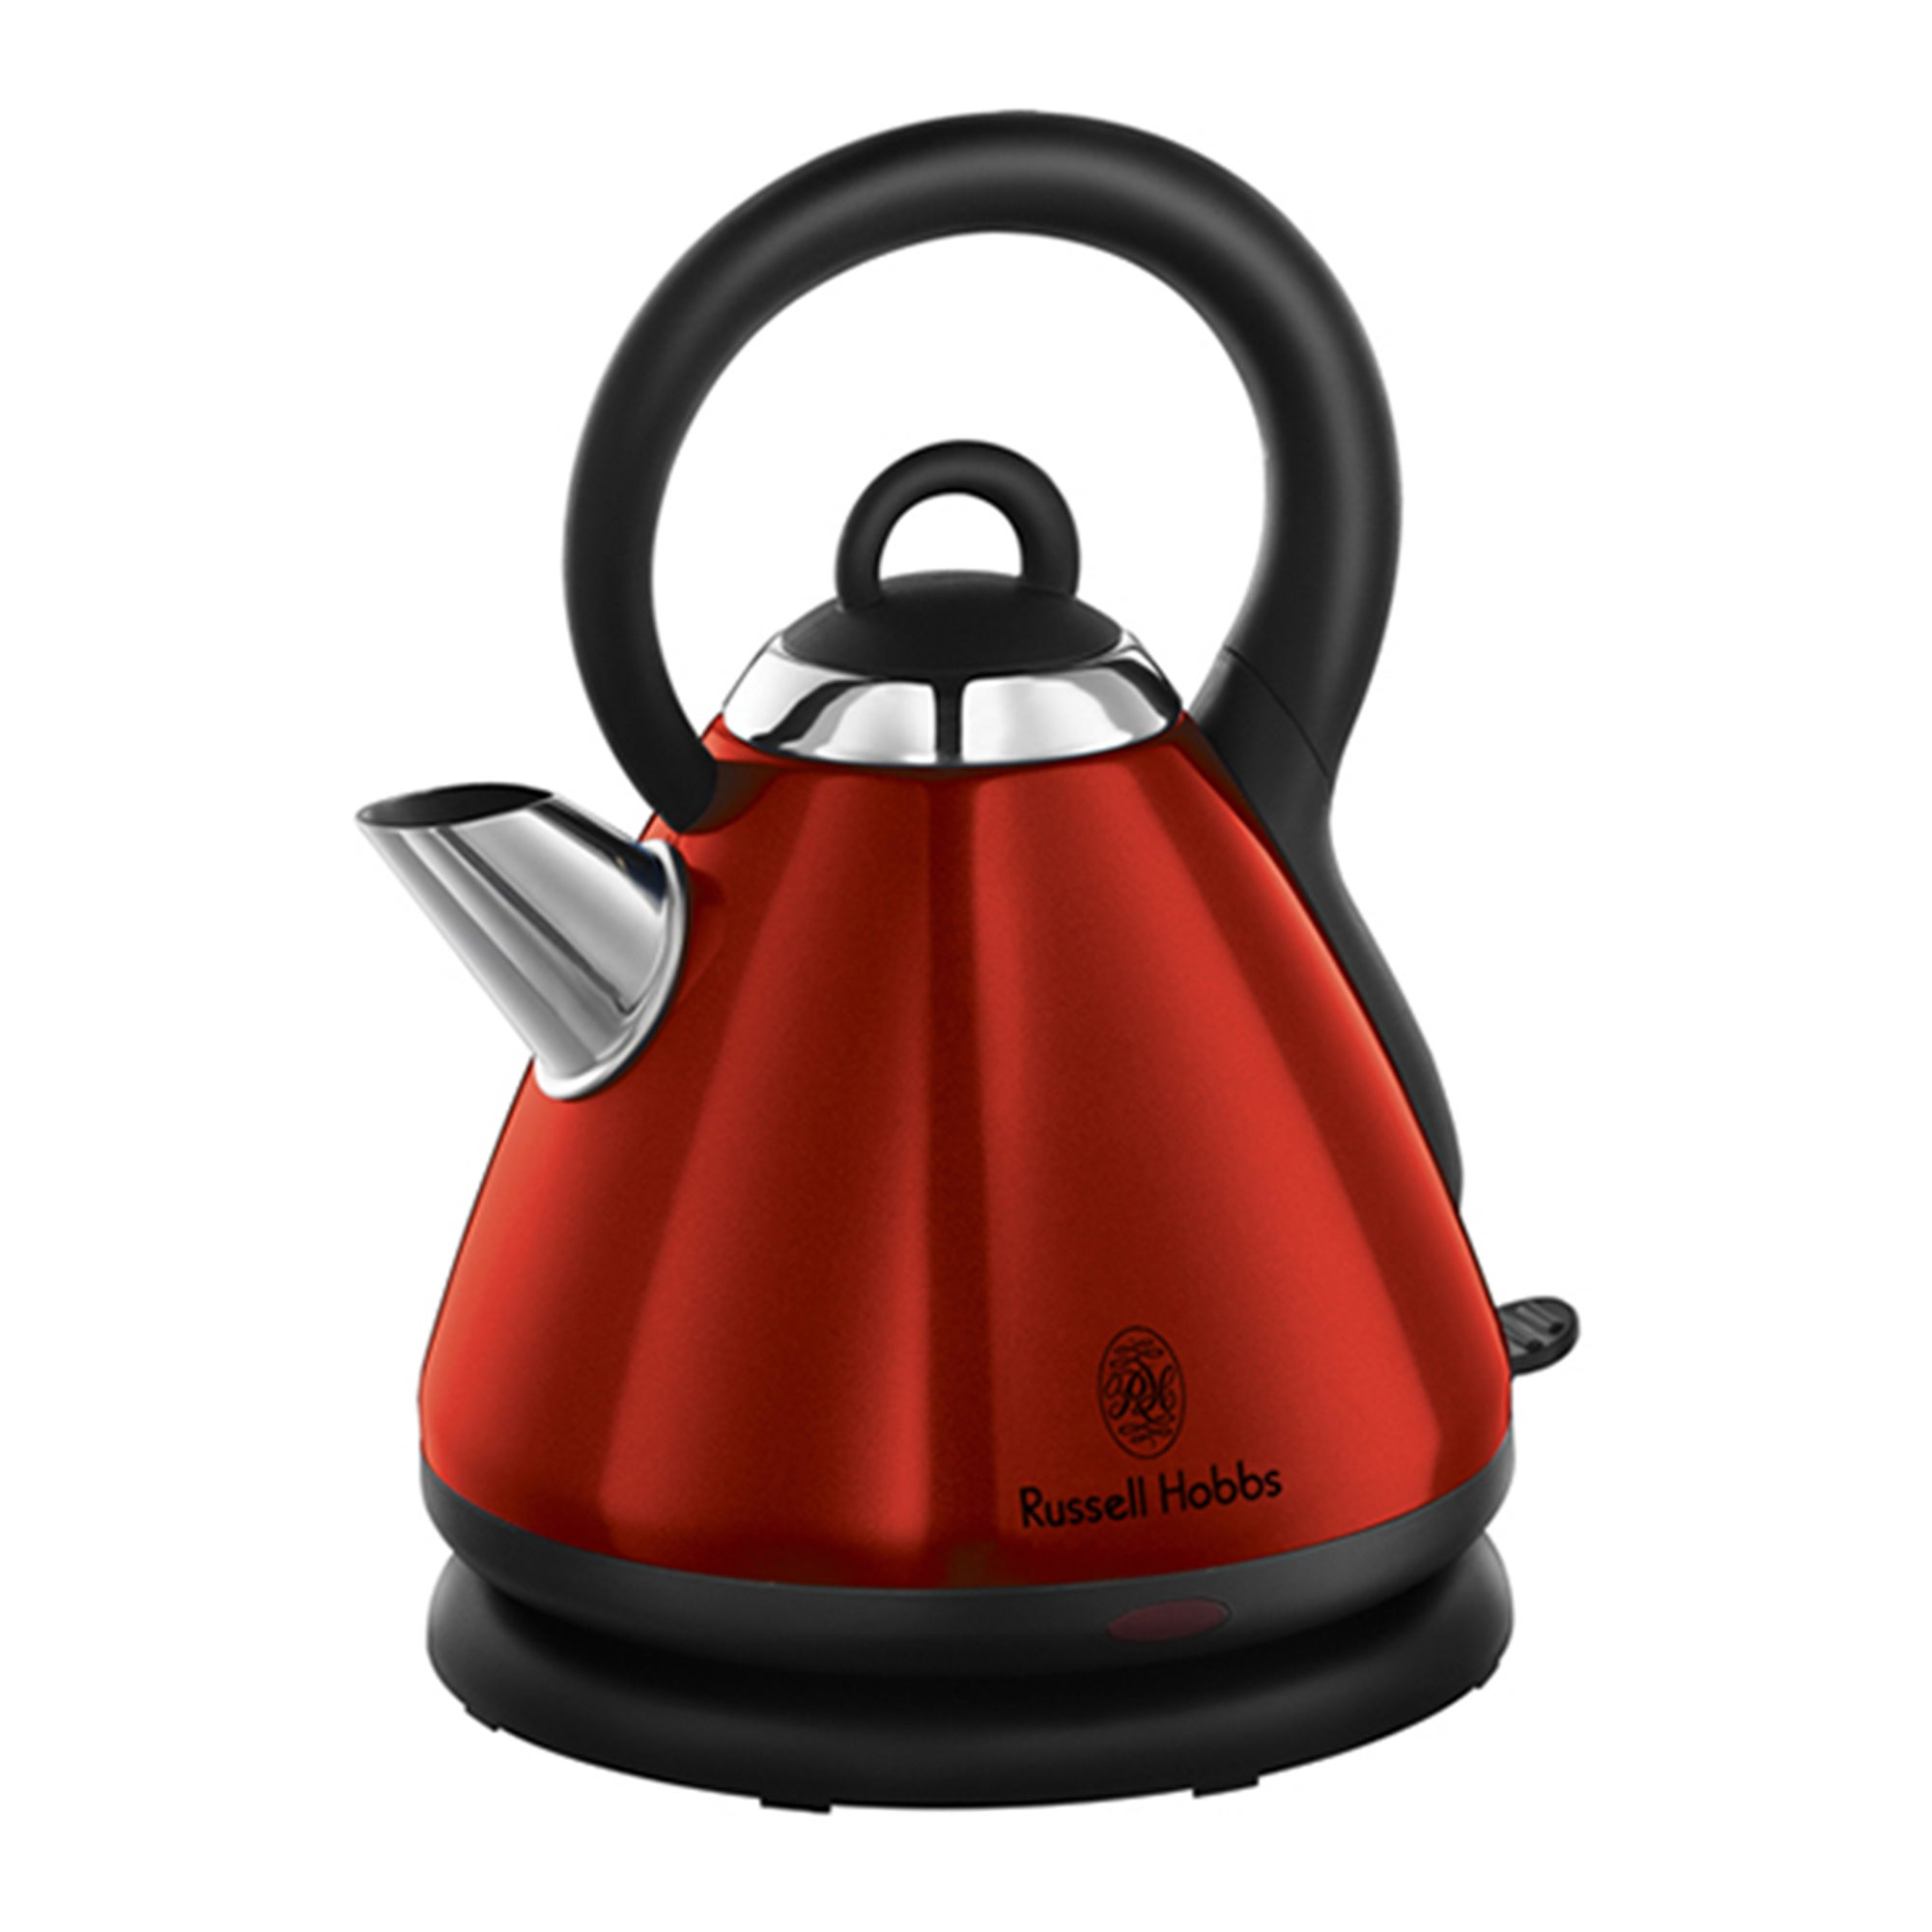 Russell Hobbs 18257 Heritage Metallic Red Kettle